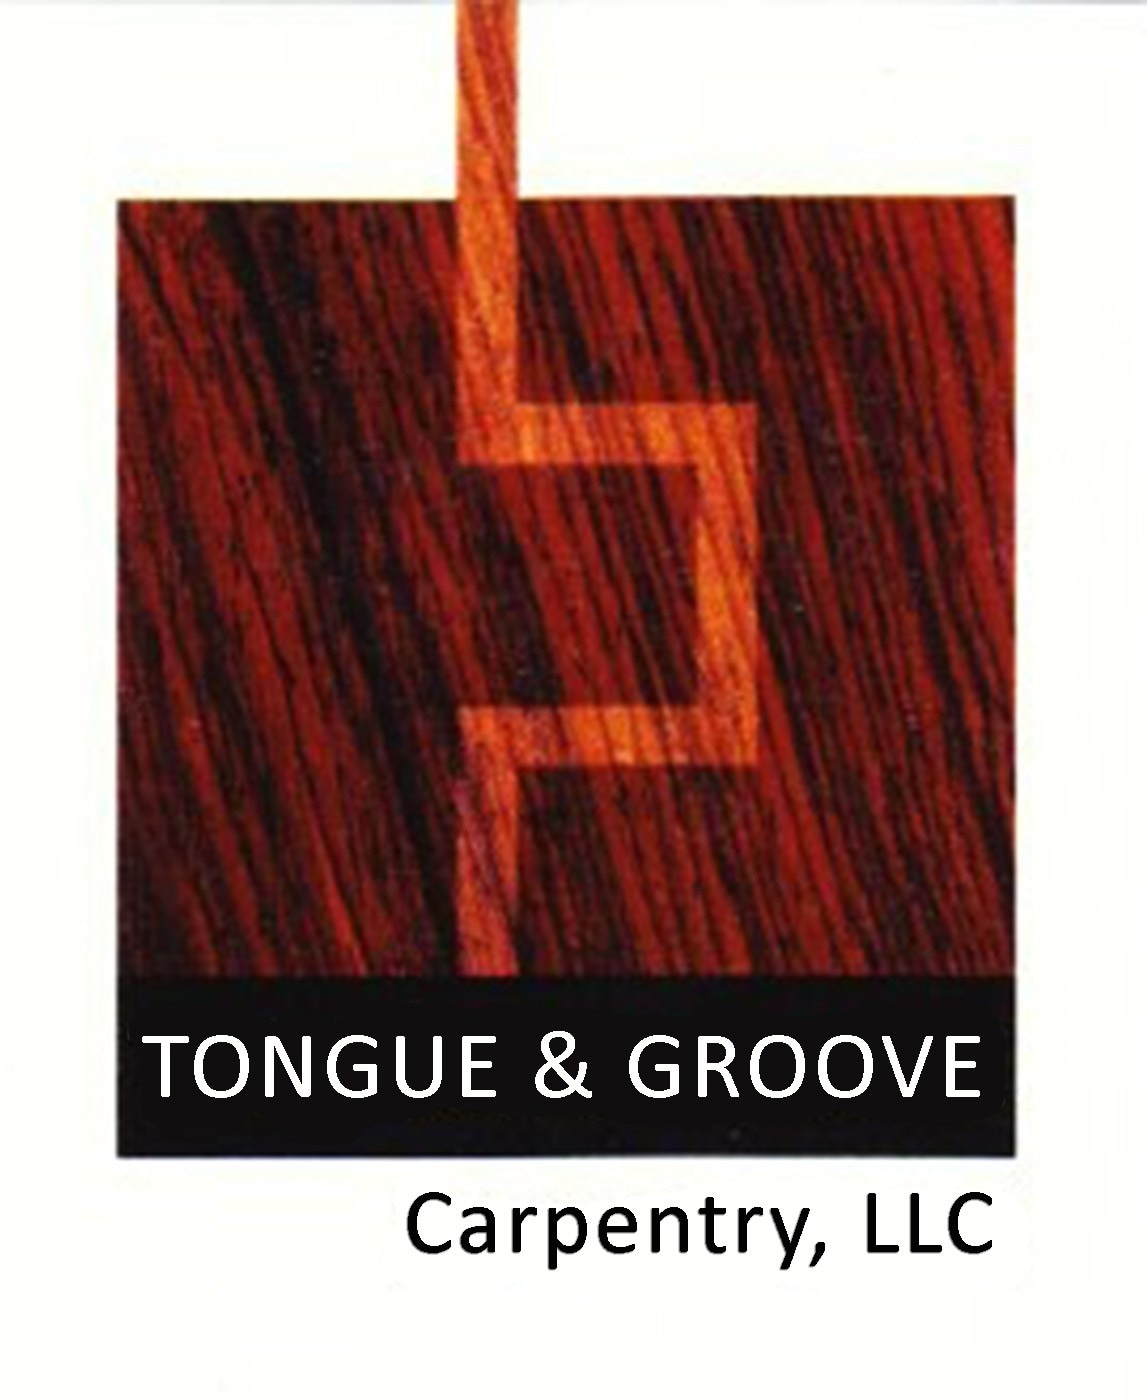 Tongue & Groove Carpentry